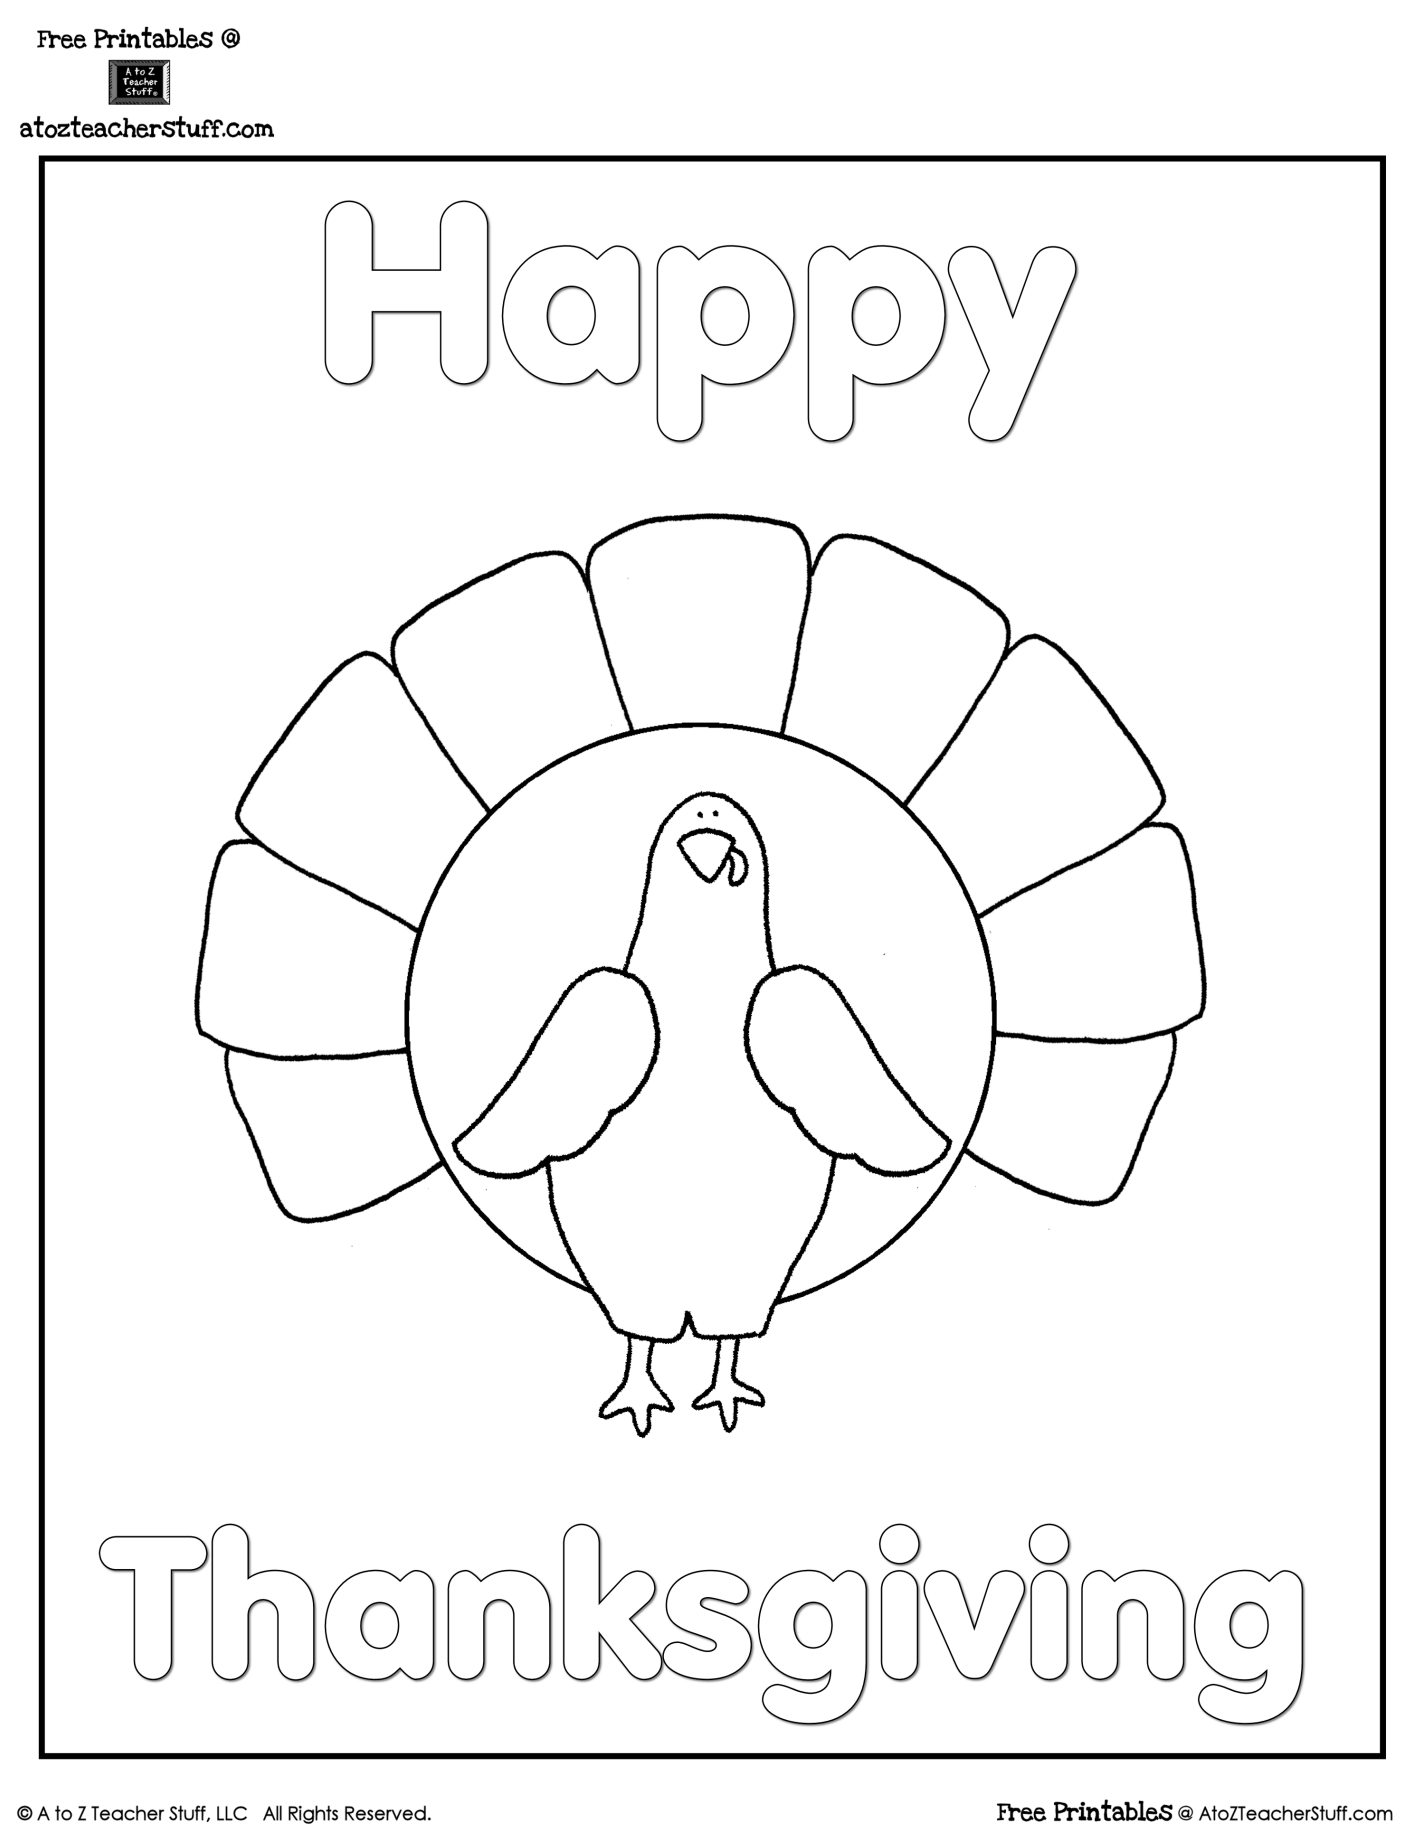 http://printables.atozteacherstuff.com/1462/turkey-coloring-sheet/